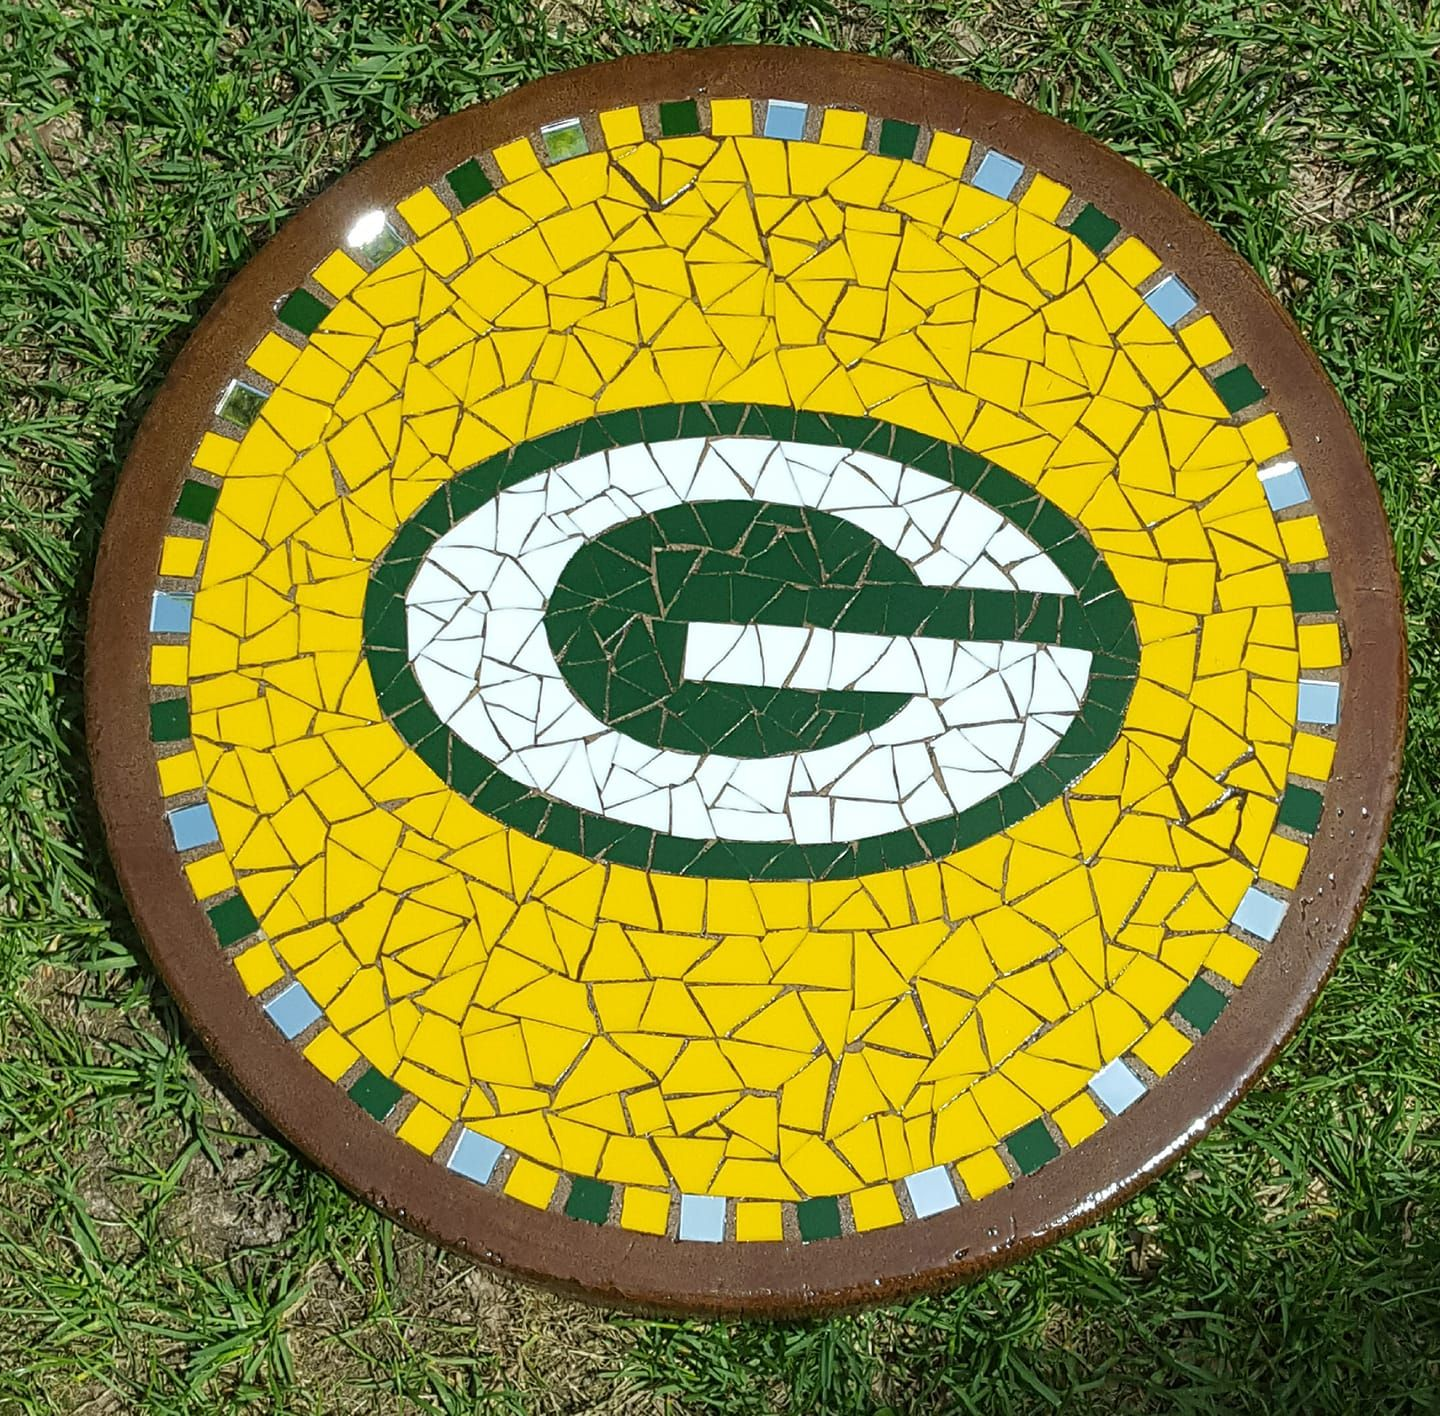 16 Greenbay Packer Stepping Stone Mosaic Glass Mosaic Stepping Stones Stone